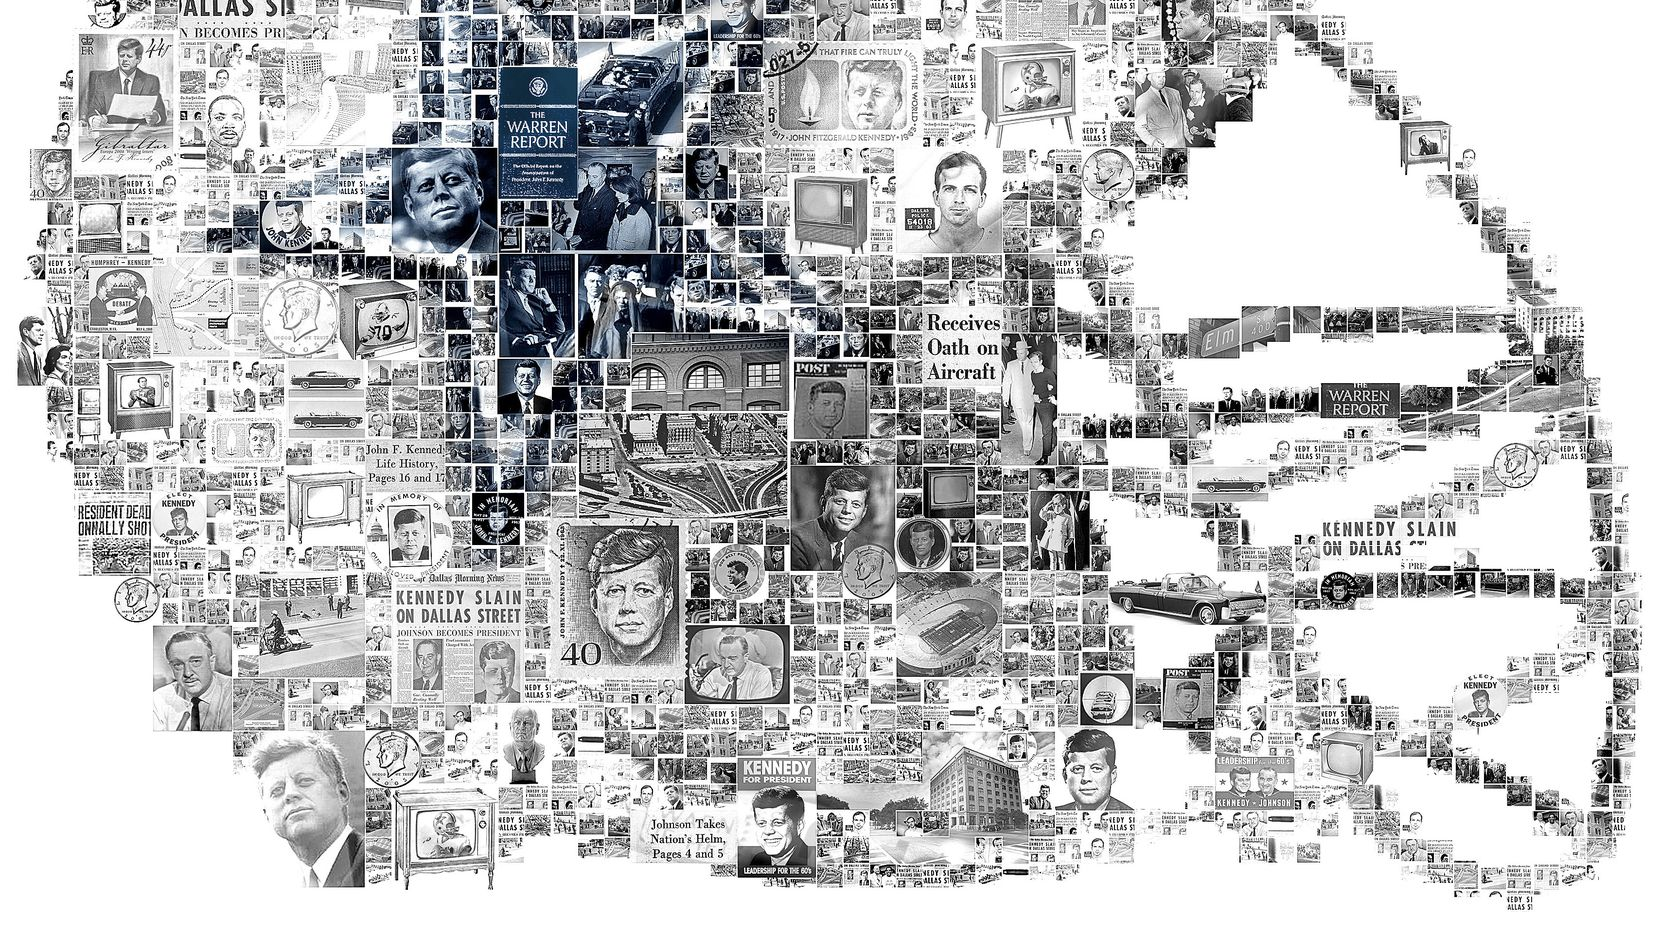 A photo illustration featuring images of the Dallas Cowboys and the assassination of John F. Kennedy in the shape of a Dallas Cowboys helmet.